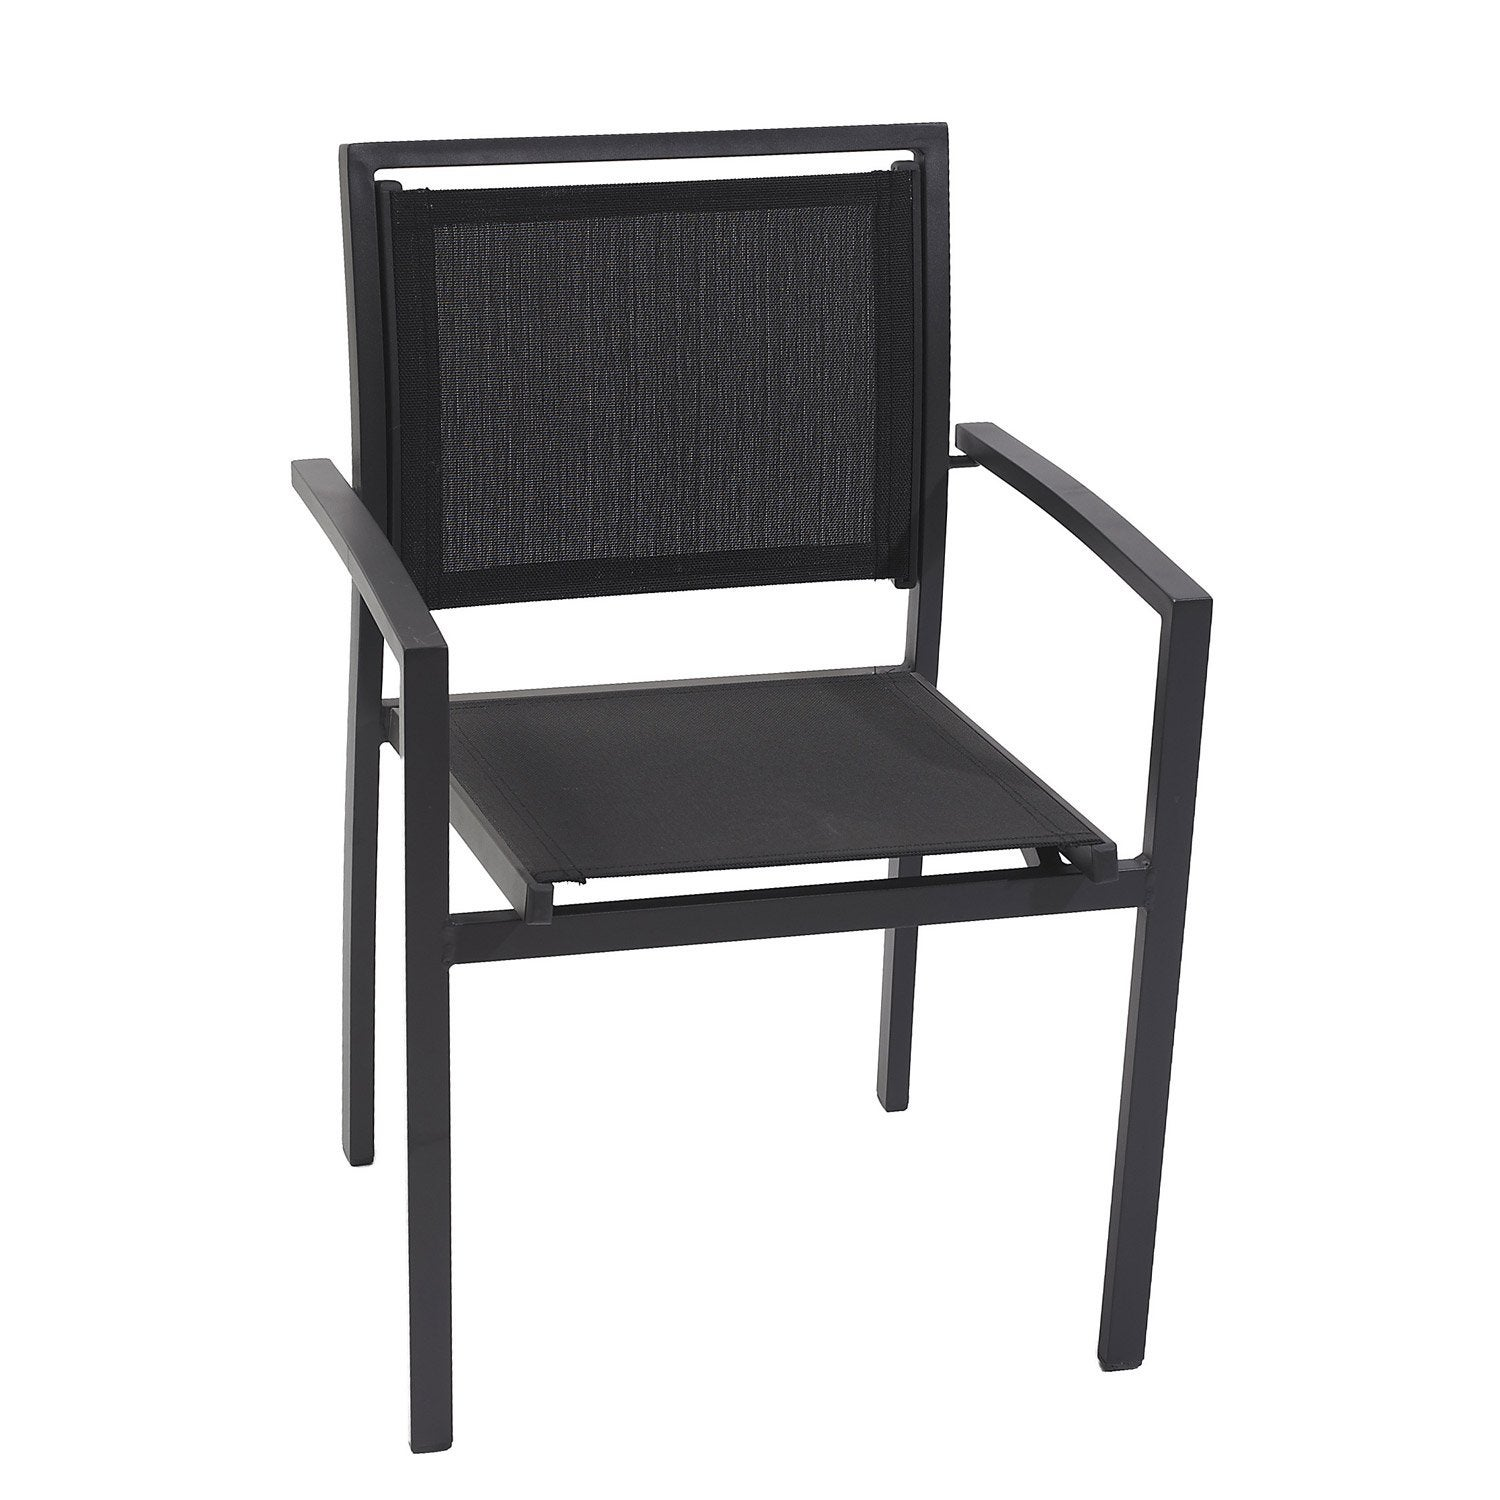 fauteuil de jardin en aluminium noir leroy merlin. Black Bedroom Furniture Sets. Home Design Ideas